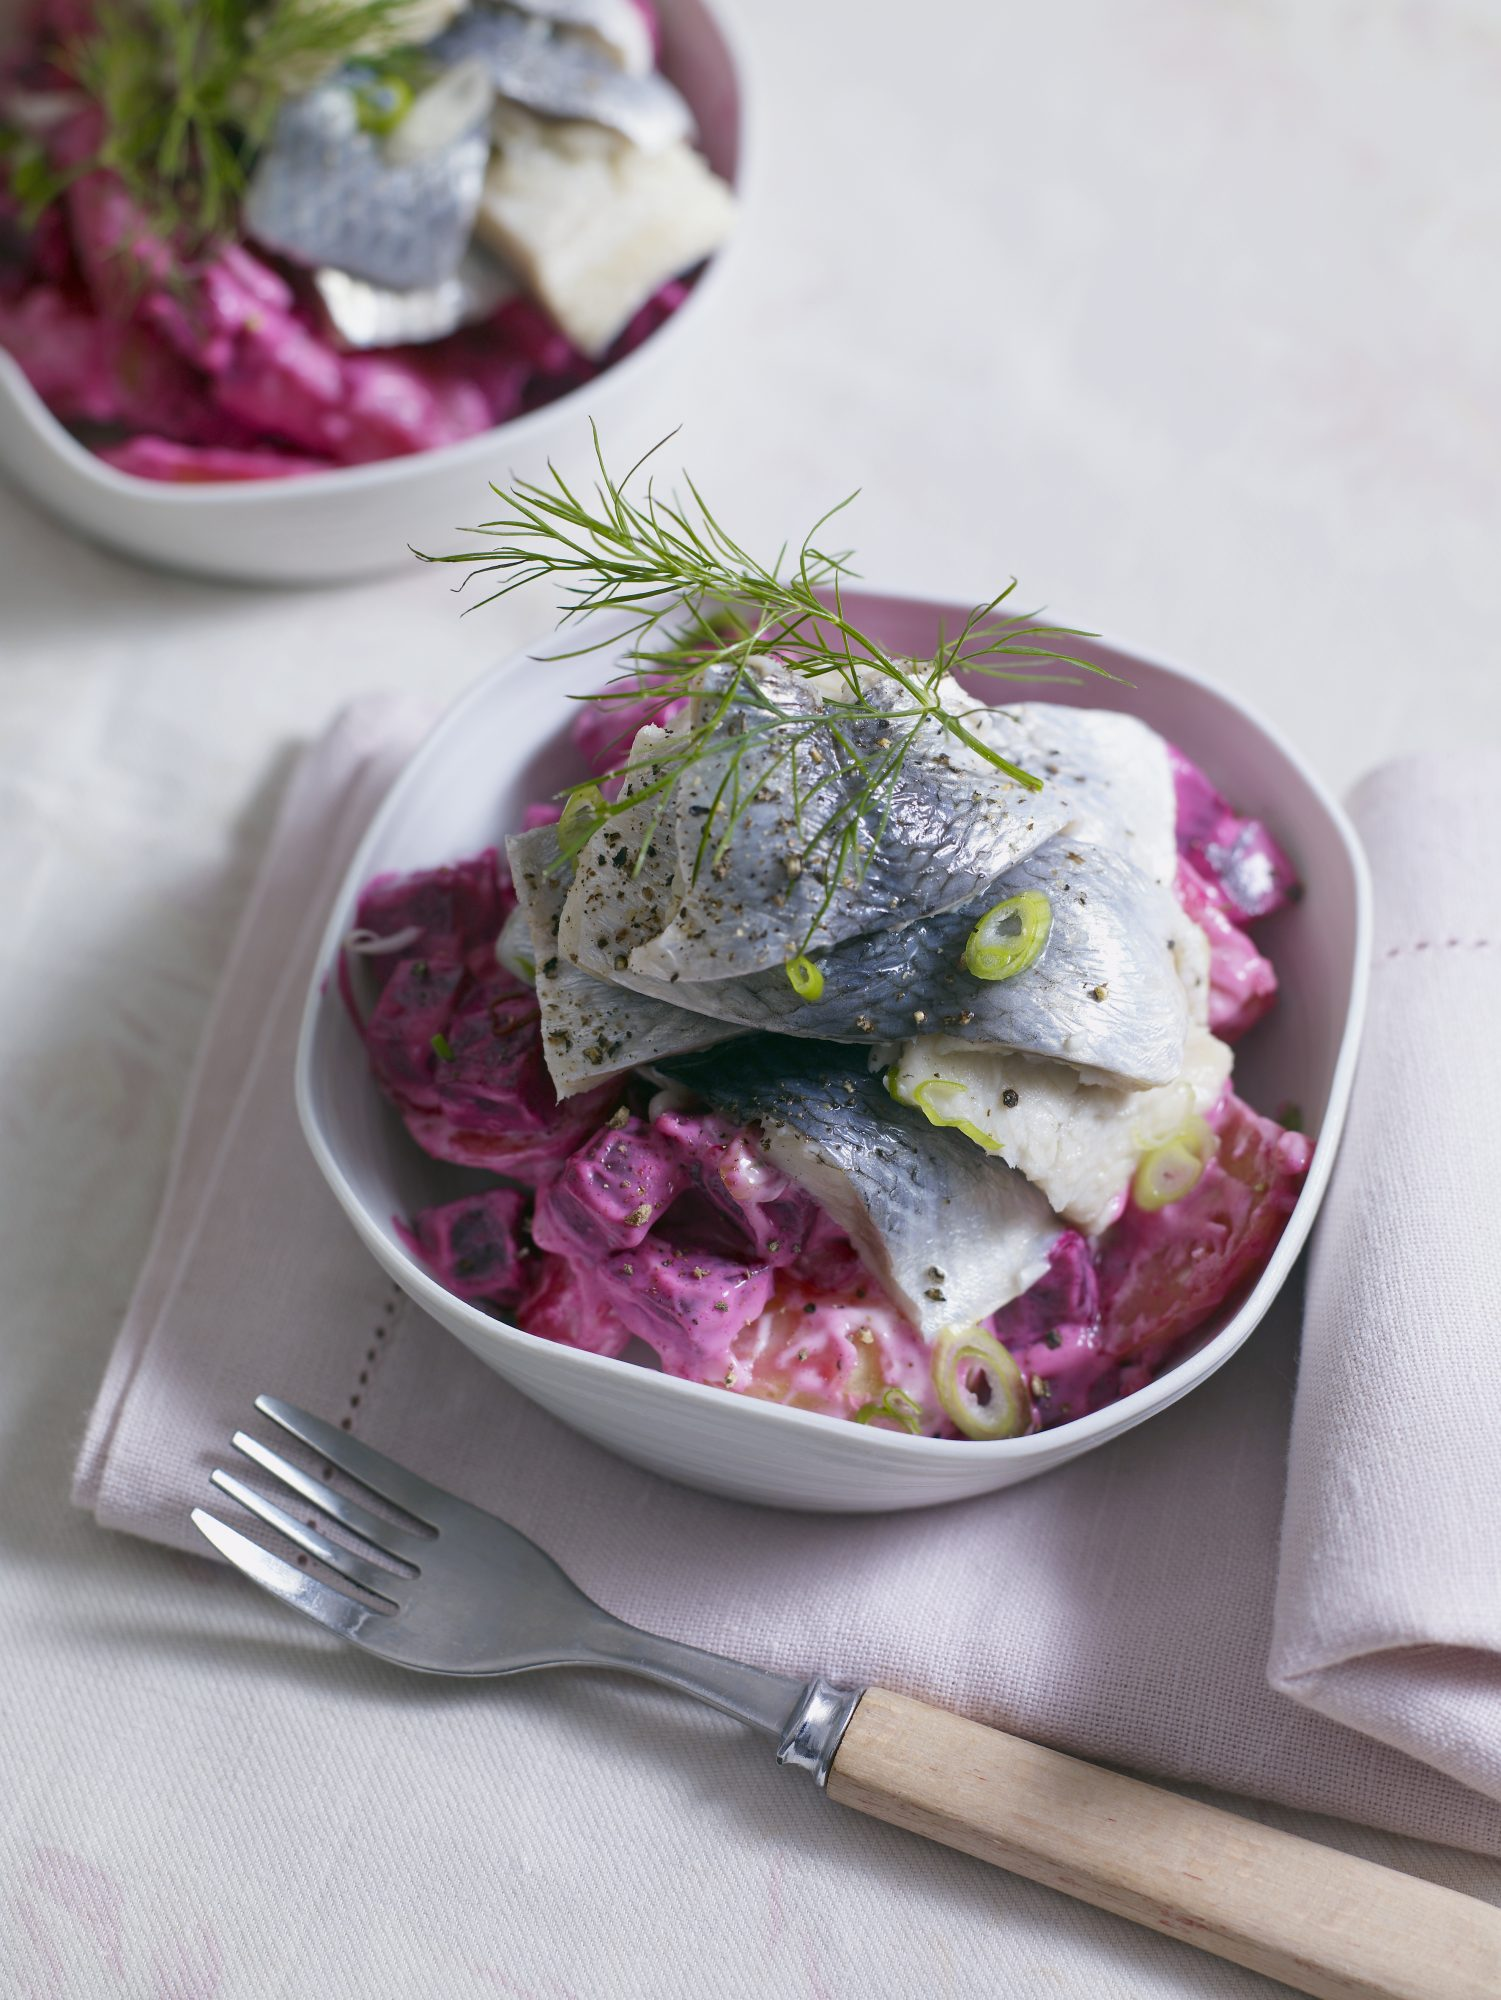 Is the Nordic Diet Really Healthier Than the Mediterranean Diet? A Nutritionist Weighs In